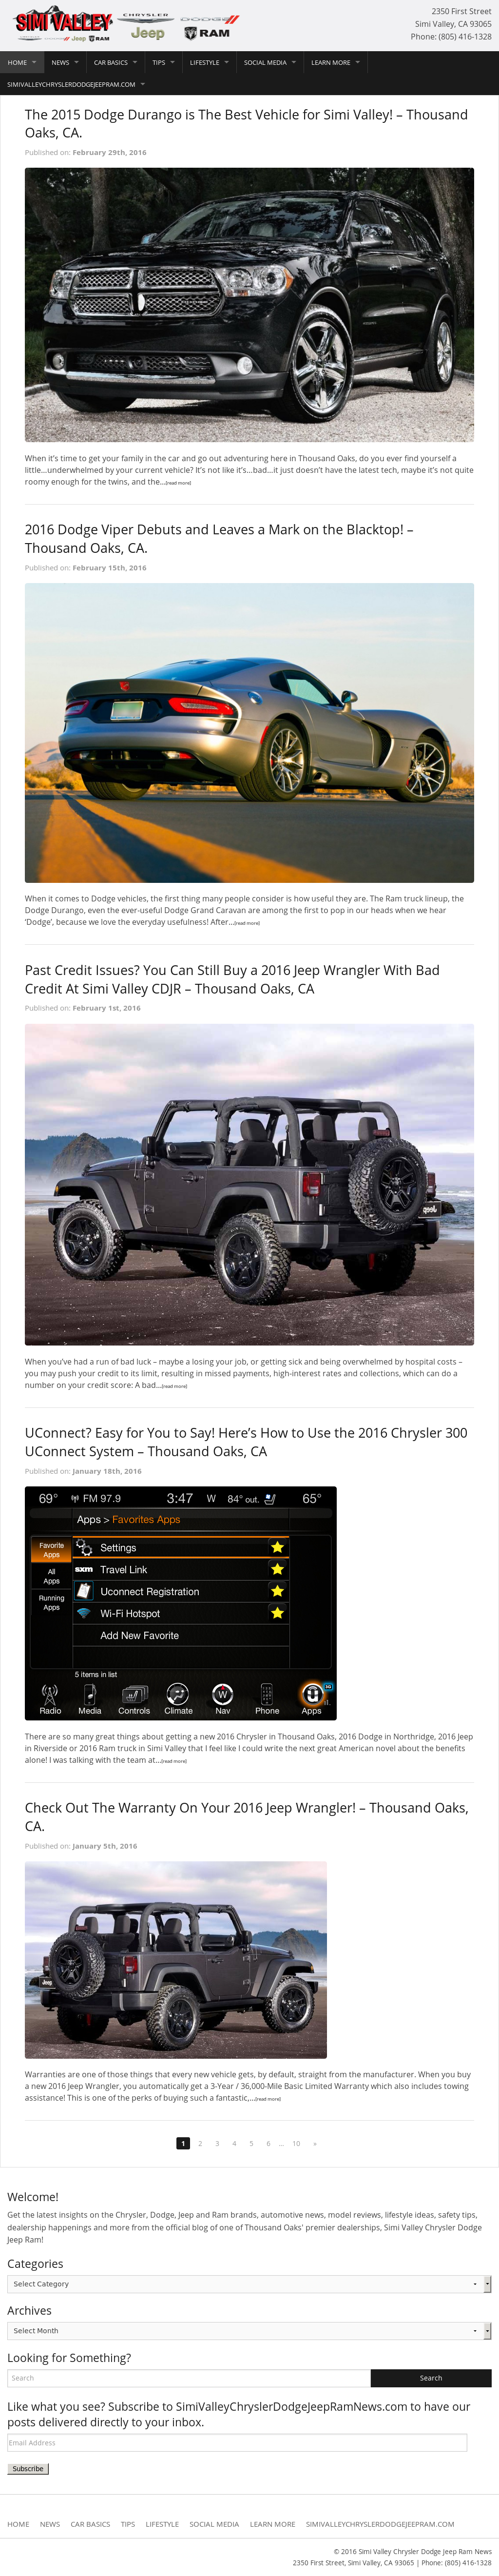 Simi Valley Jeep >> Simi Valley Chrysler Dodge Jeep Ram News Competitors